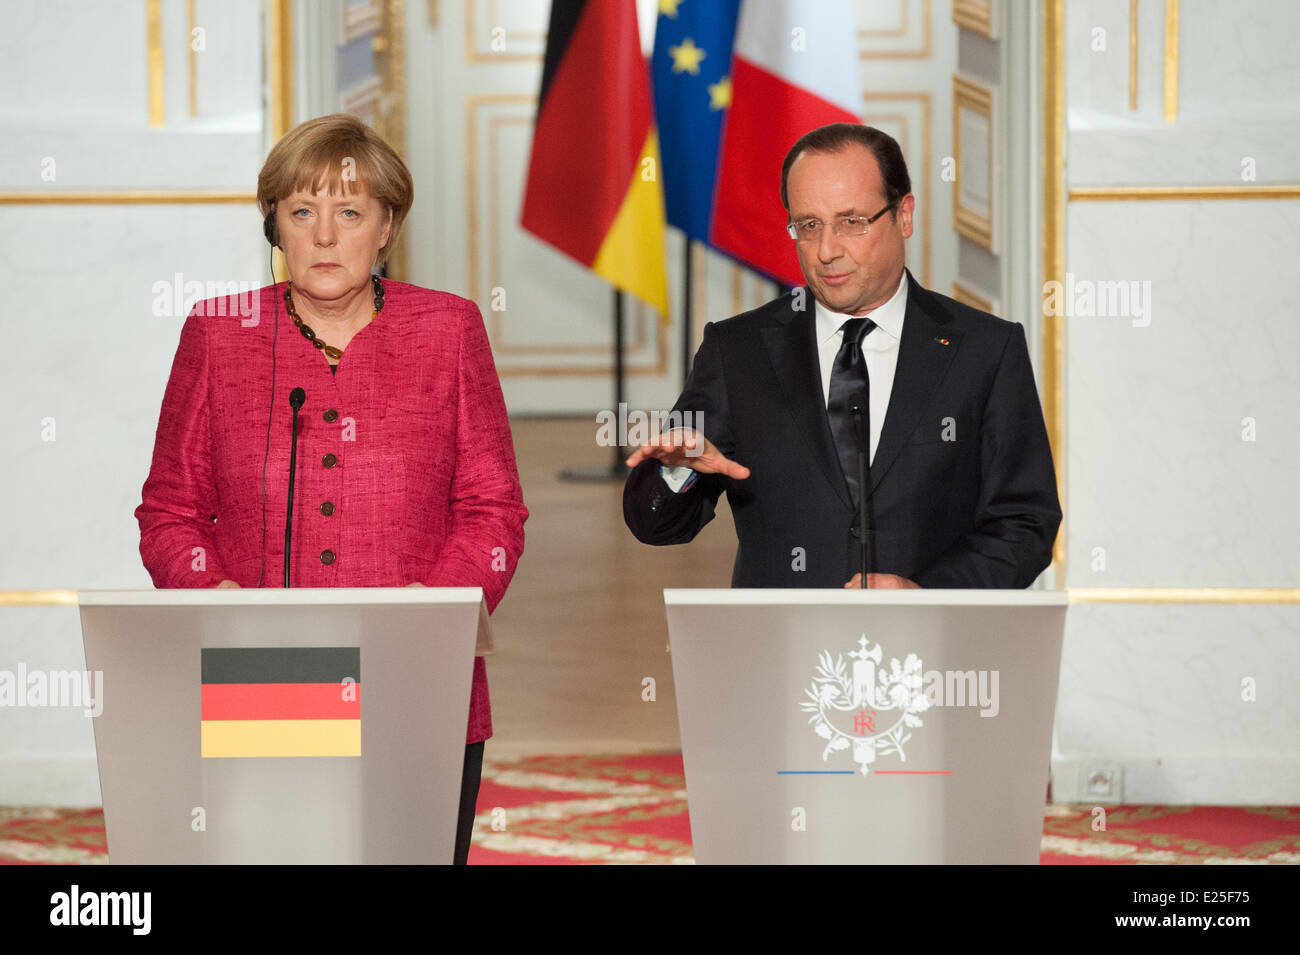 French President Francois Hollande and visiting German Chancellor Angela Merkel attend a press conference at the - Stock Image